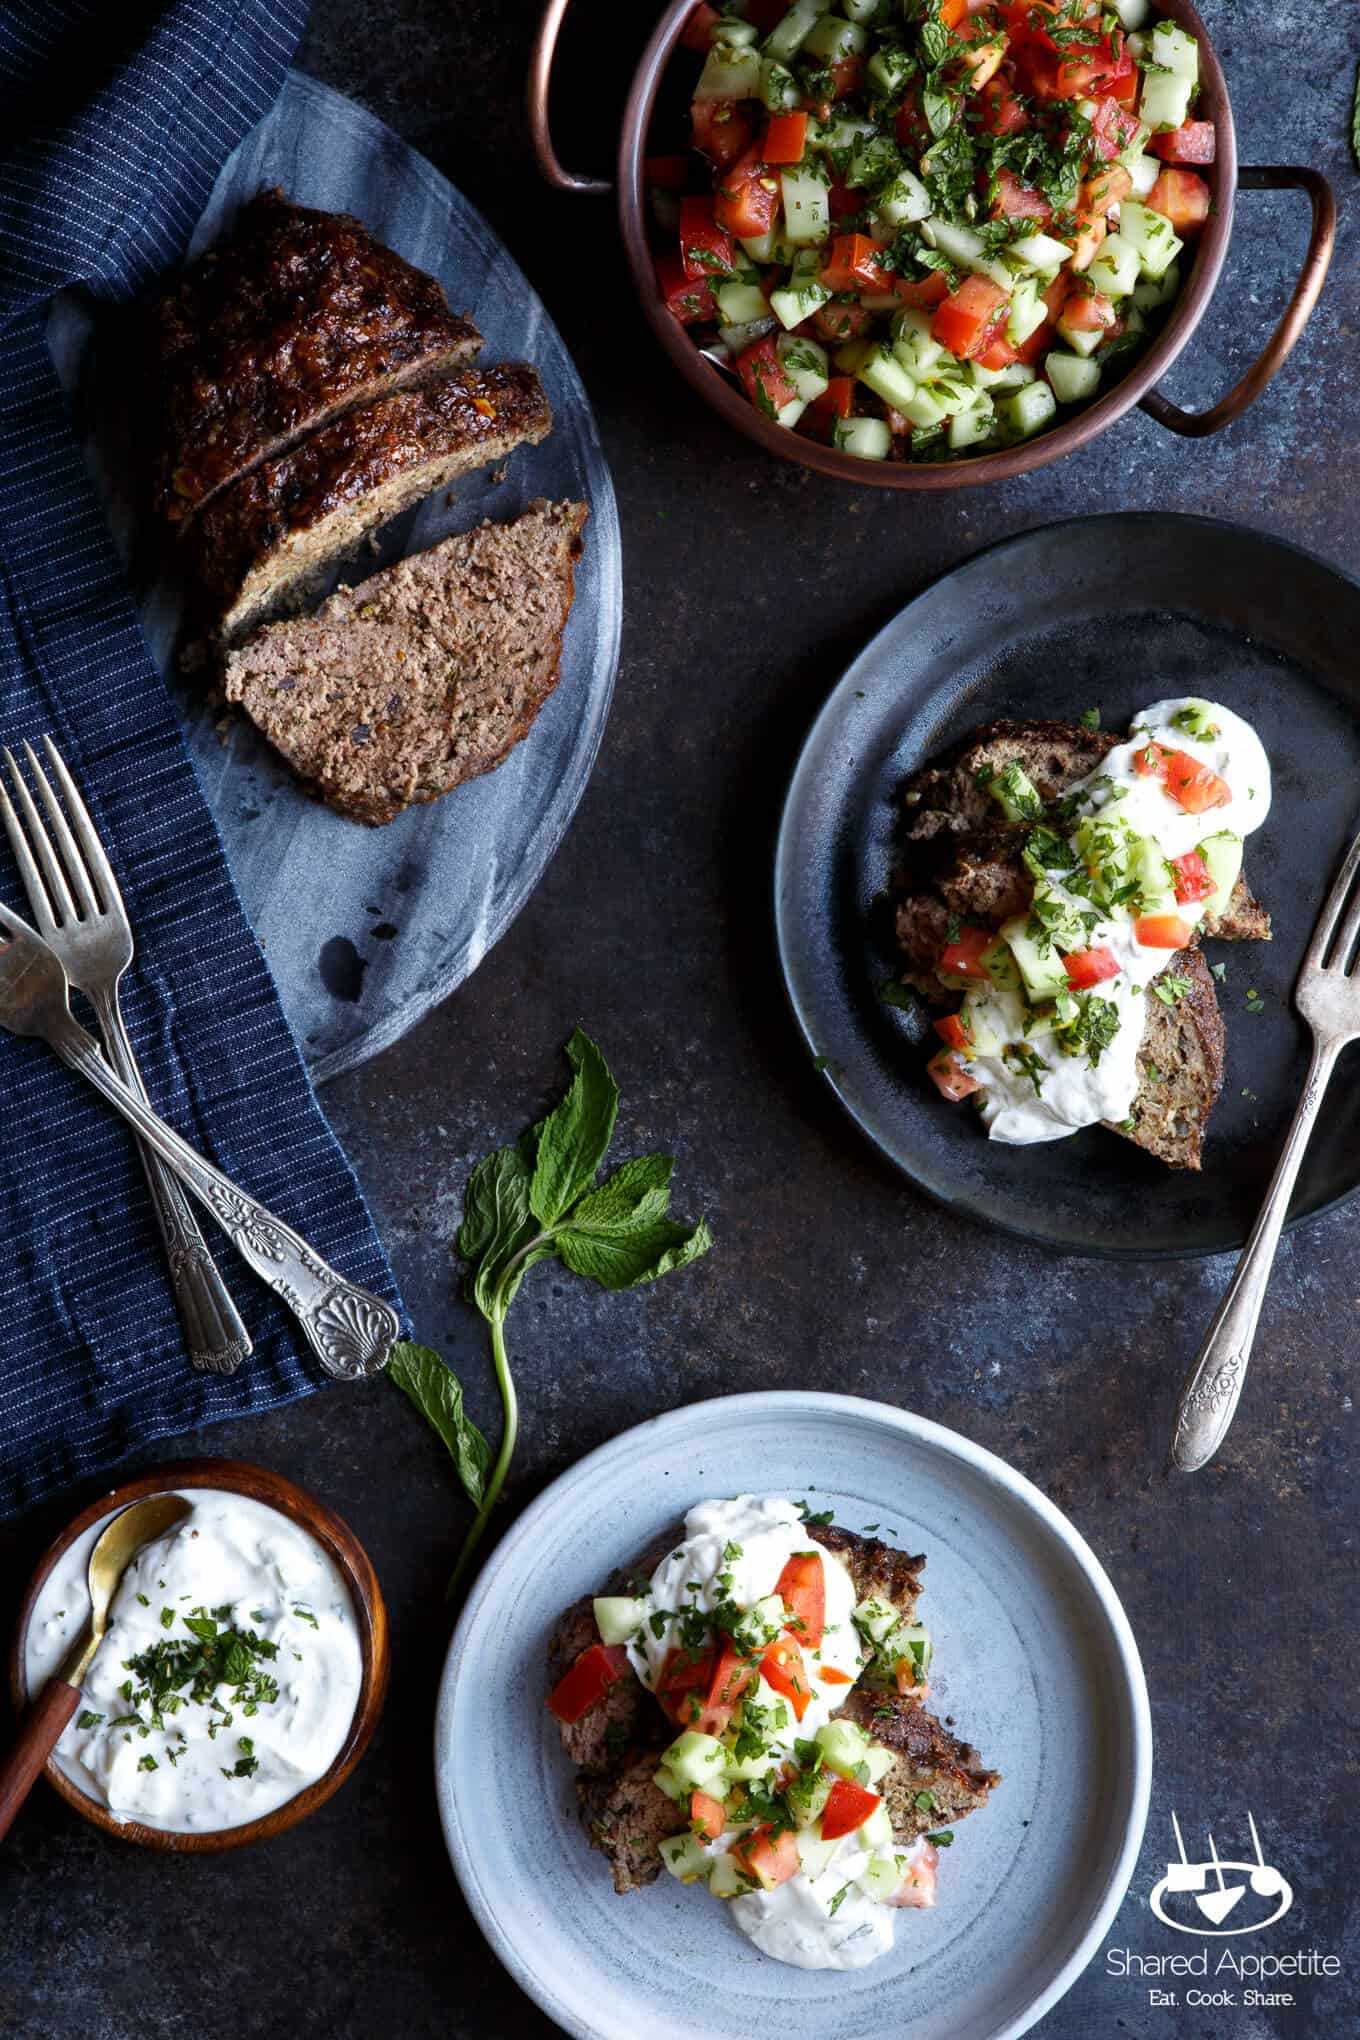 Lamb Kefta Meatloaf with Spiced Yogurt and Israeli Salad | sharedappetite.com